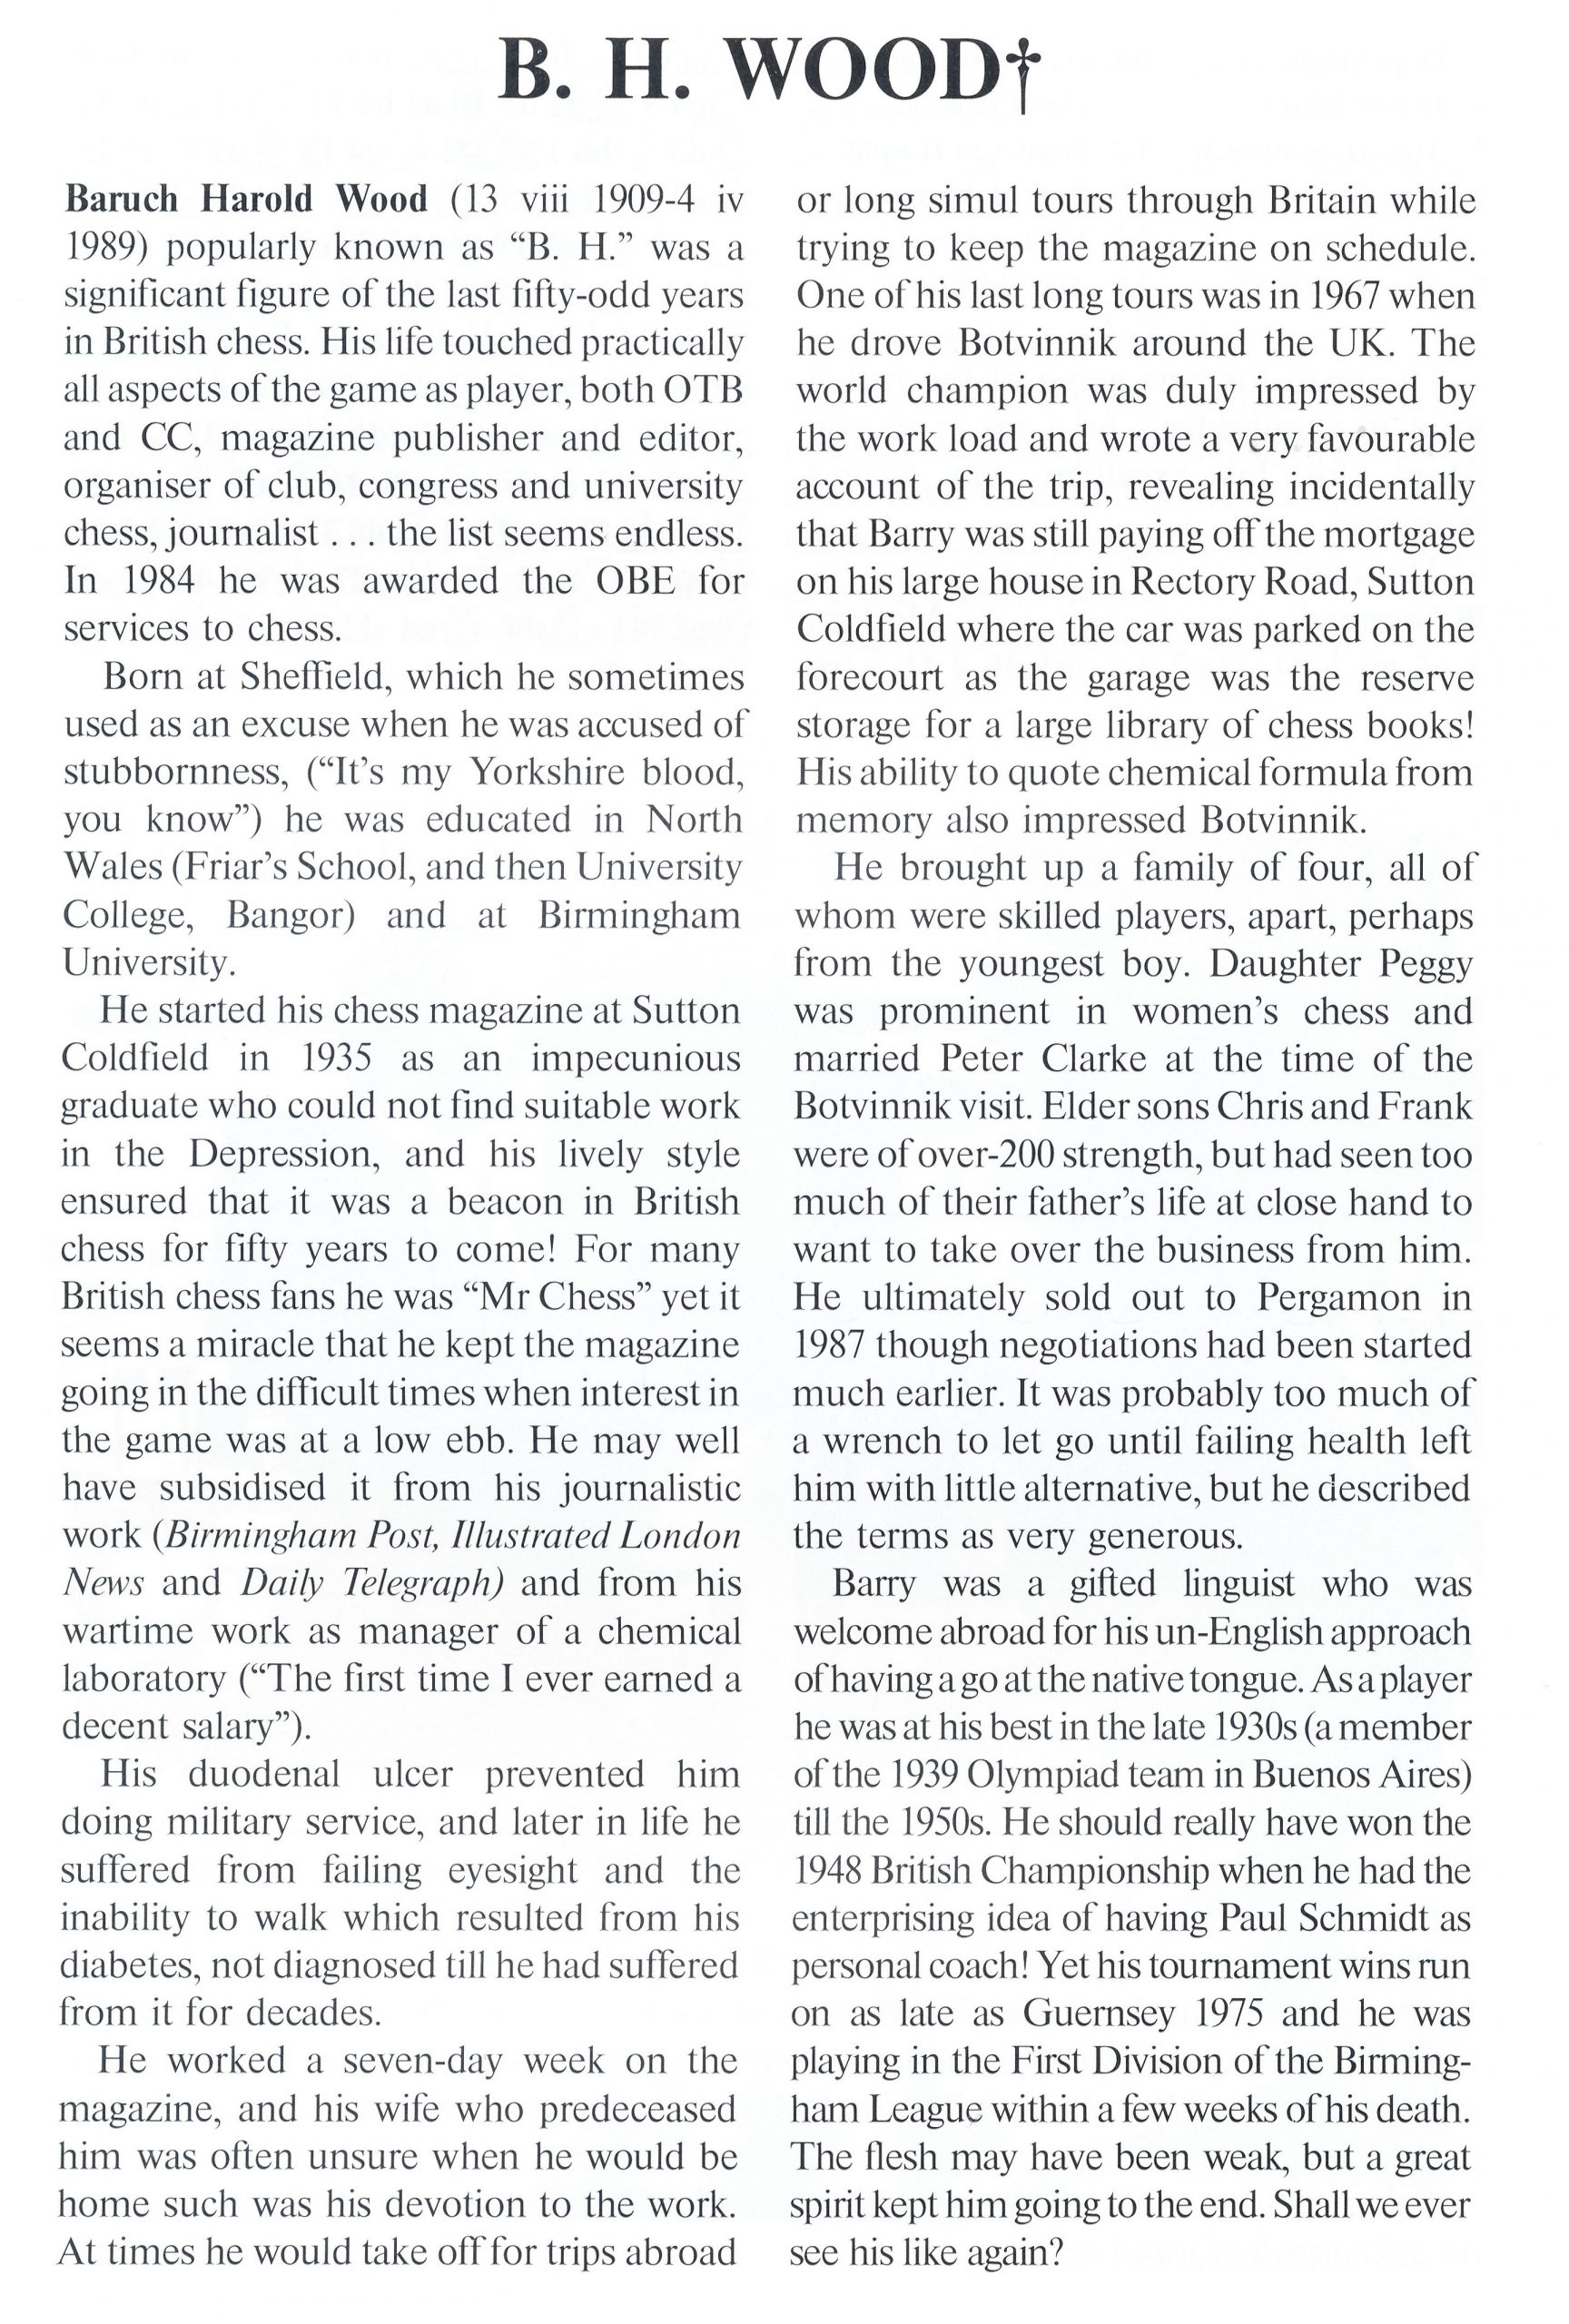 British Chess Magazine, Volume CX (109), Number 5 (May), page 210